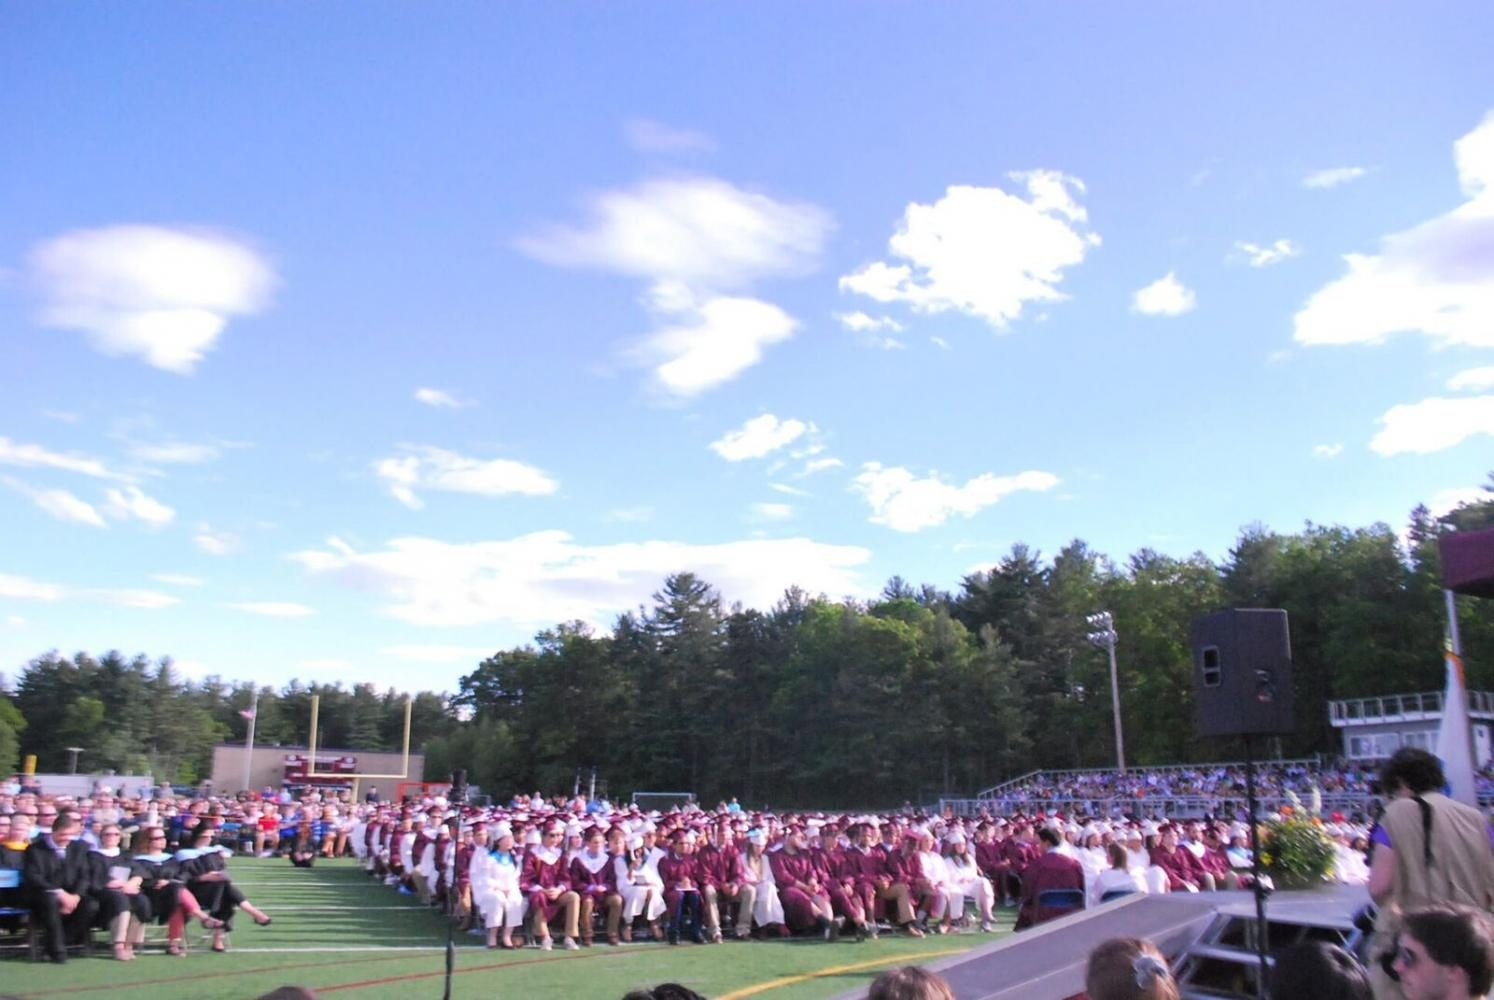 Everyone is seated on the WA Trustees Field in anticipation for the start of the ceremony.